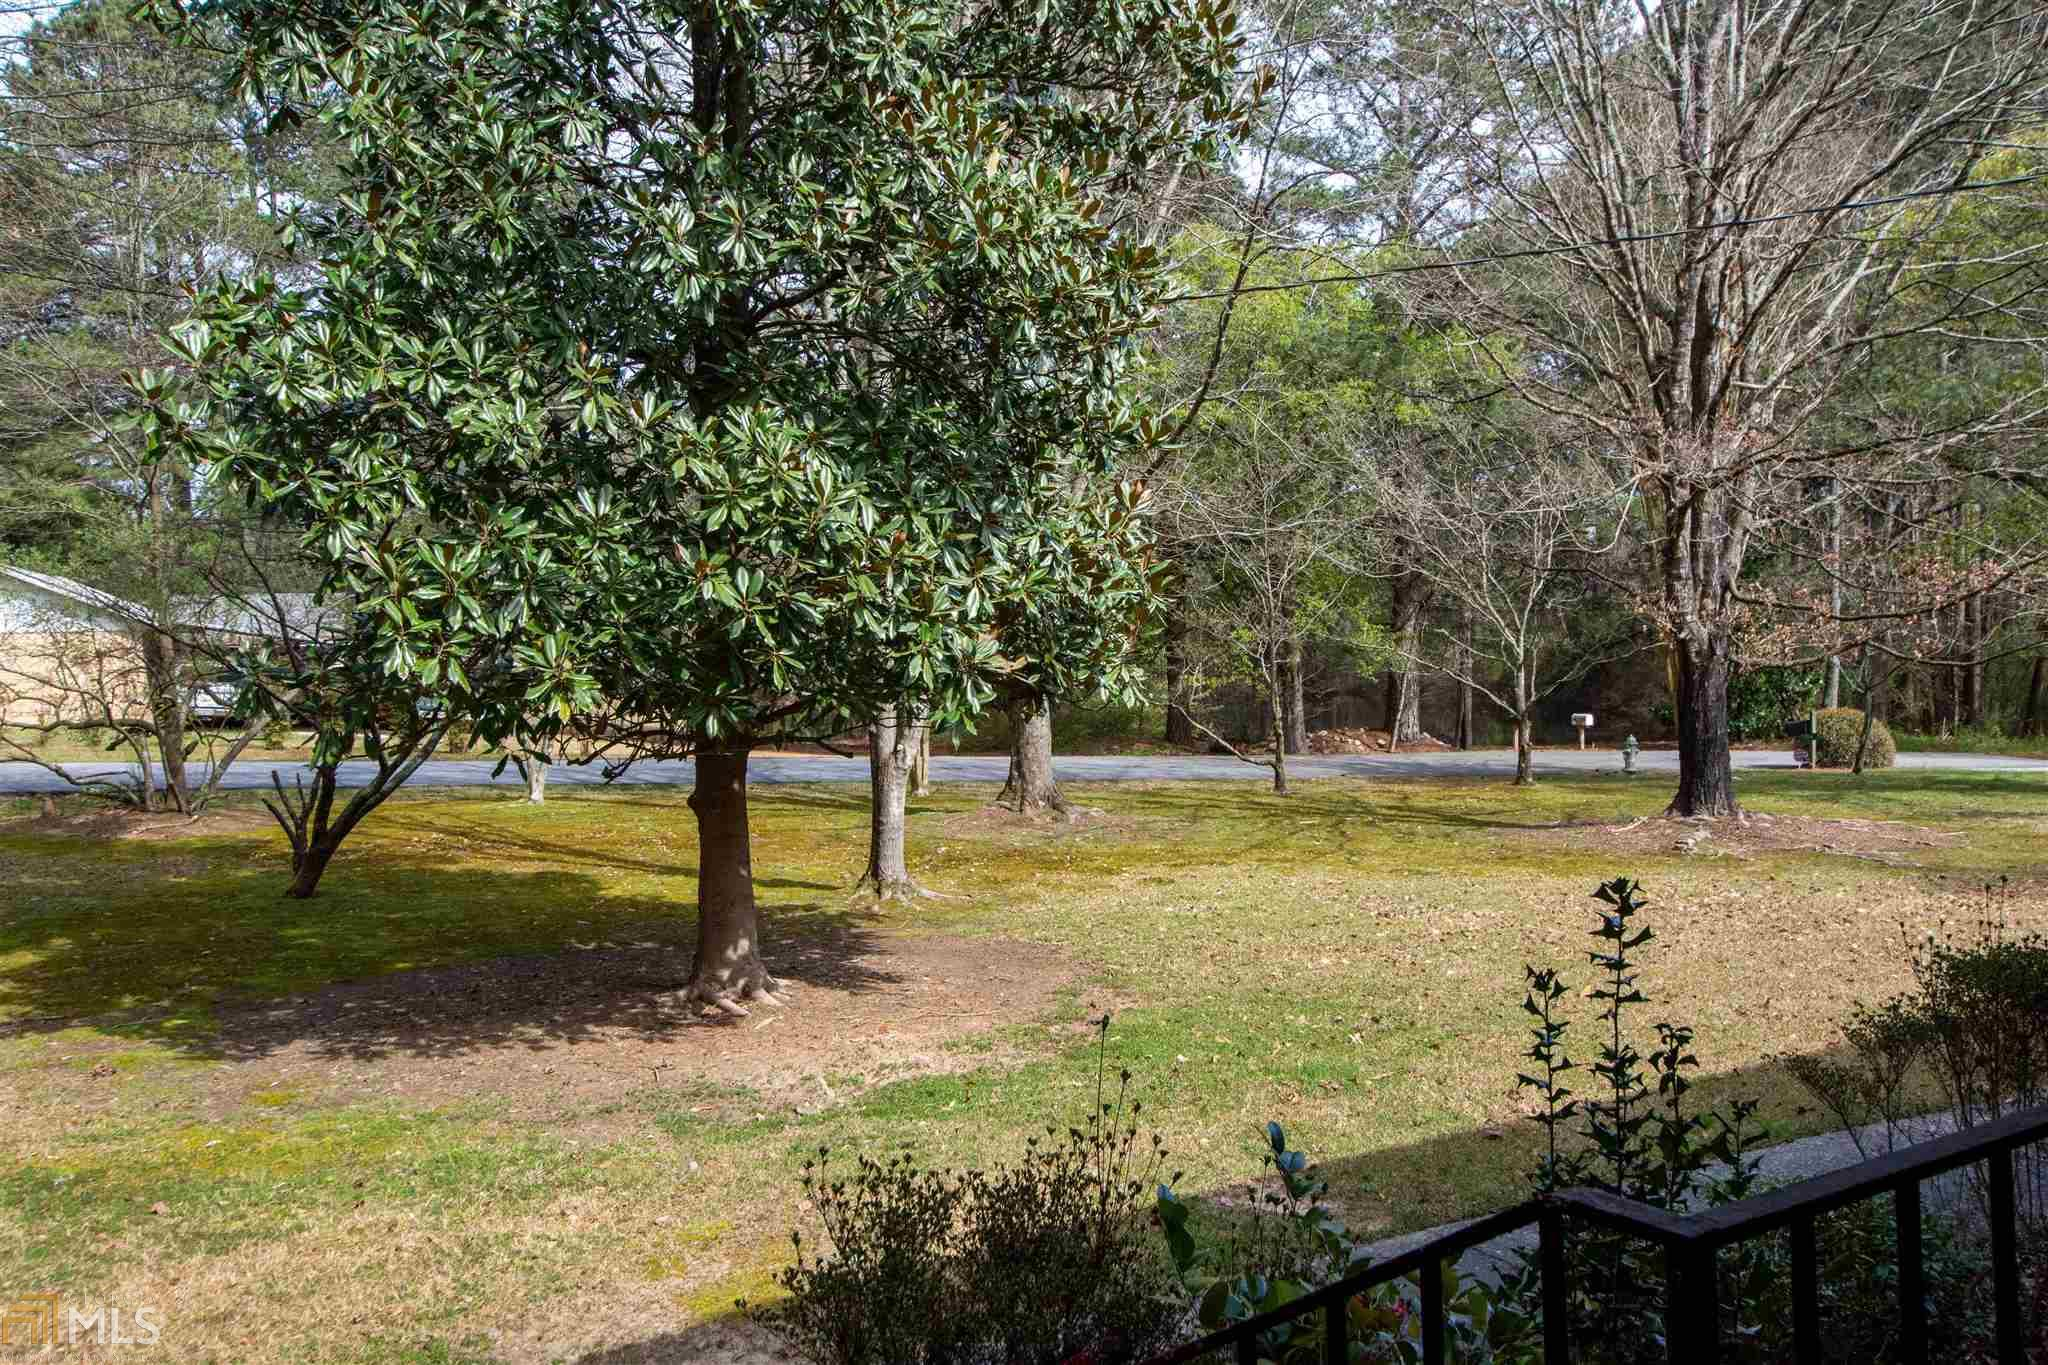 2543 S Lake, Snellville, Georgia 30078, 4 Bedrooms Bedrooms, ,3 BathroomsBathrooms,Single Family,For Sale,2543 S Lake,1,8948035